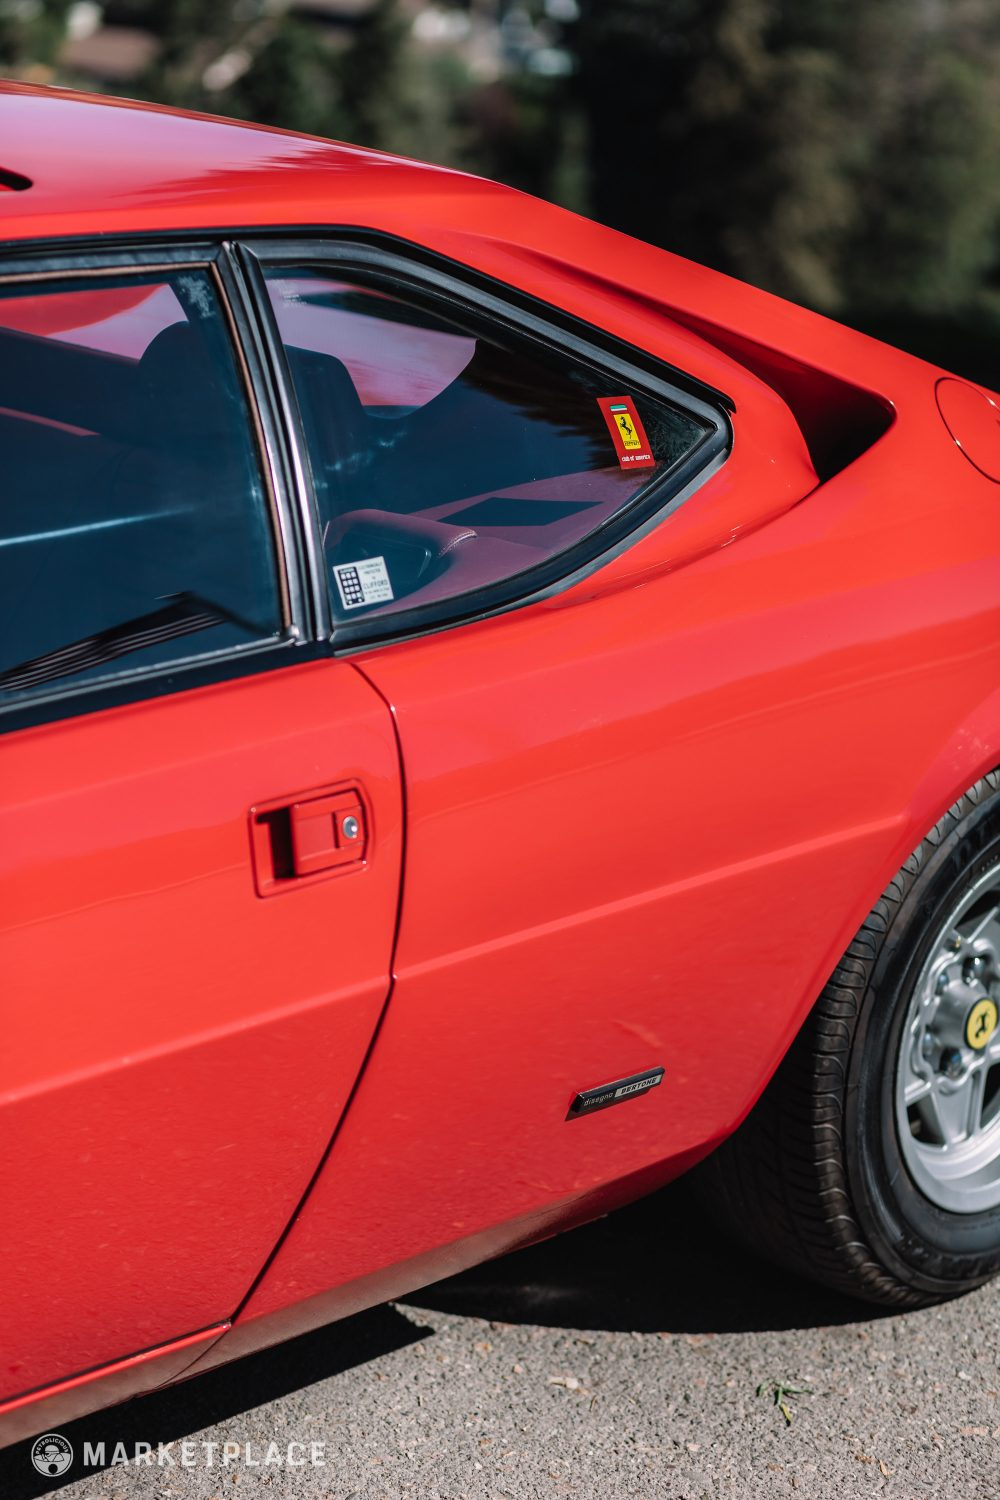 1978 Ferrari 308 Gt4 Petrolicious Wiring Diagram Wheels The Appear Original And Are In Good Condition With Mild Curb Marks On Each To Note